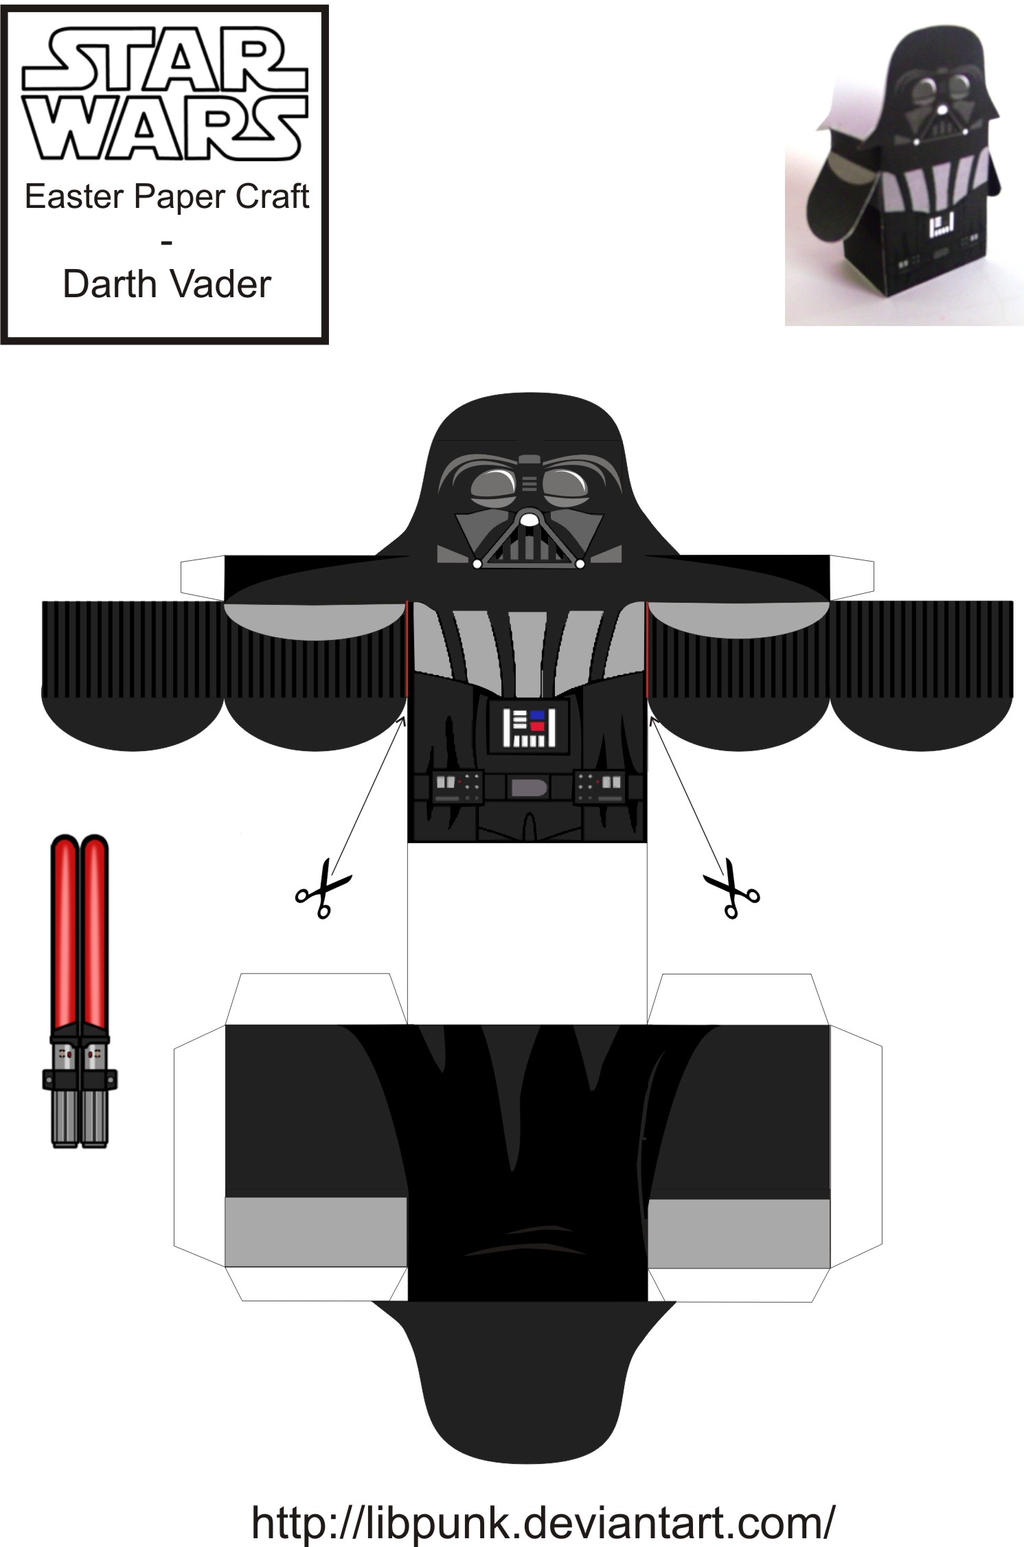 Darth vader easter paper craft by libpunk on deviantart for Star wars arts and crafts